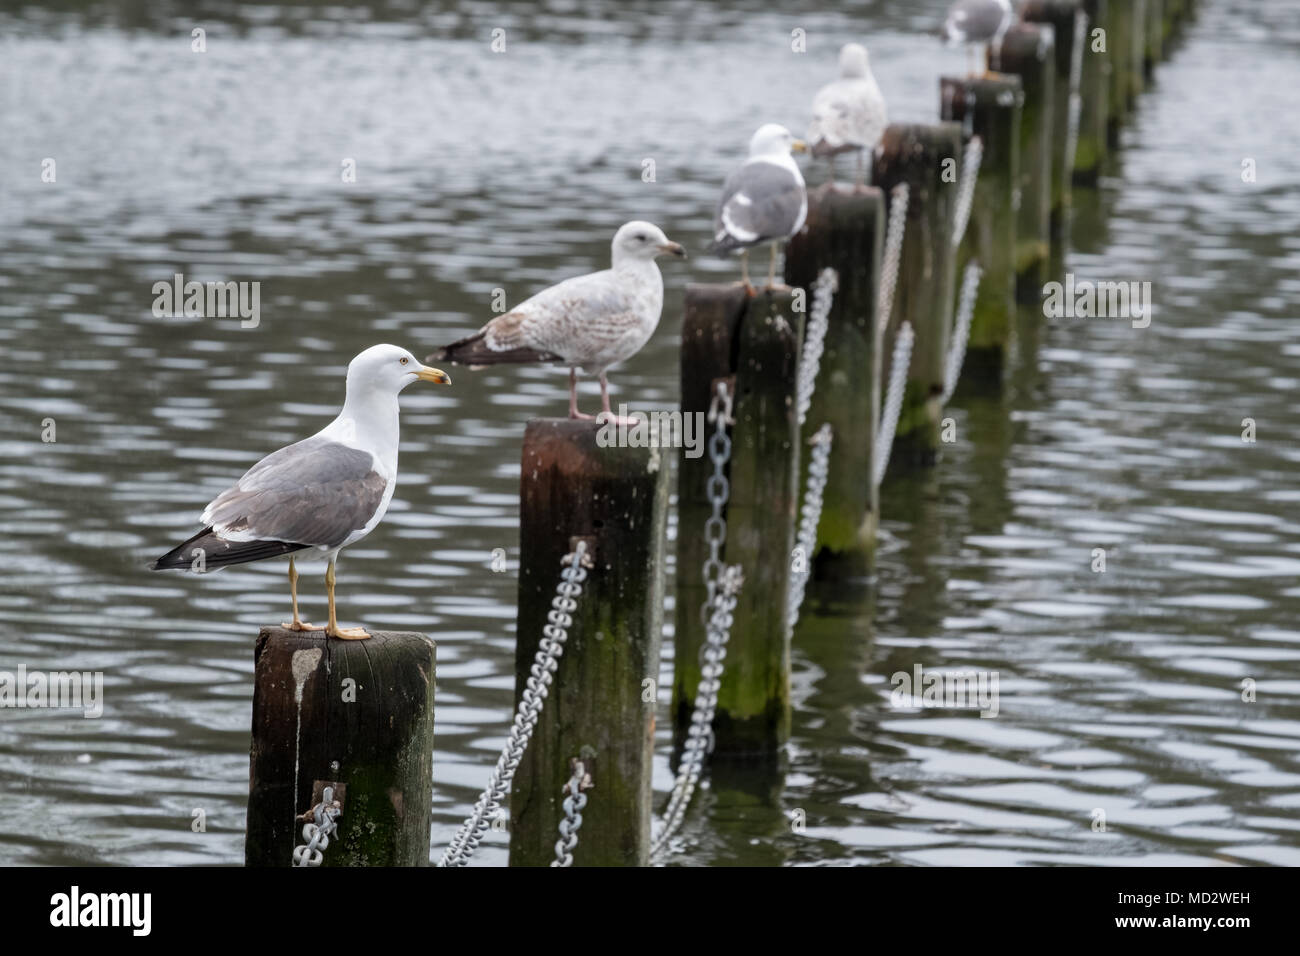 Birds perching on wooden posts in lake at Regent's Park in London - Stock Image